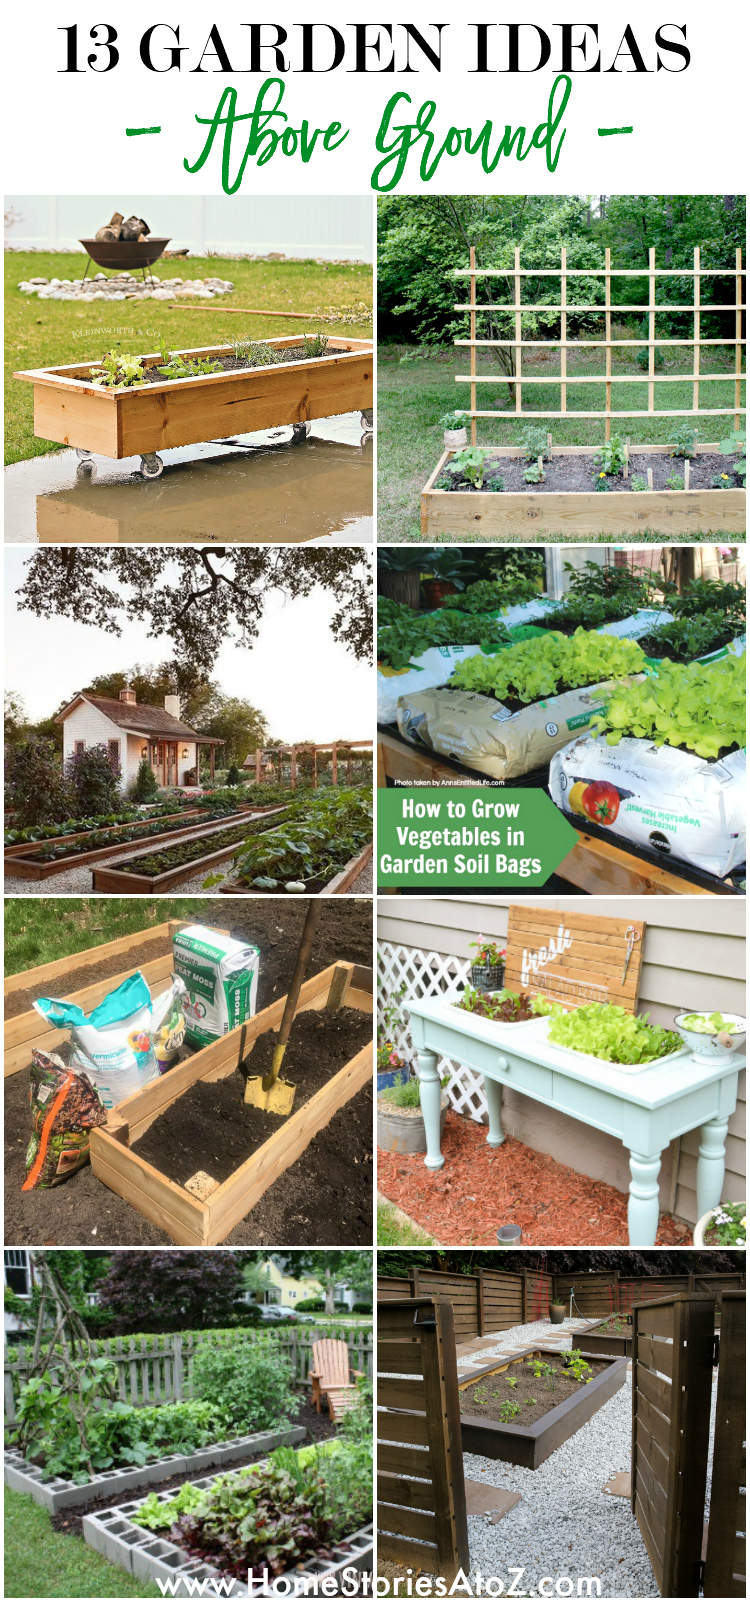 13 Even More Ideas for Above Ground Gardening with Raised Beds